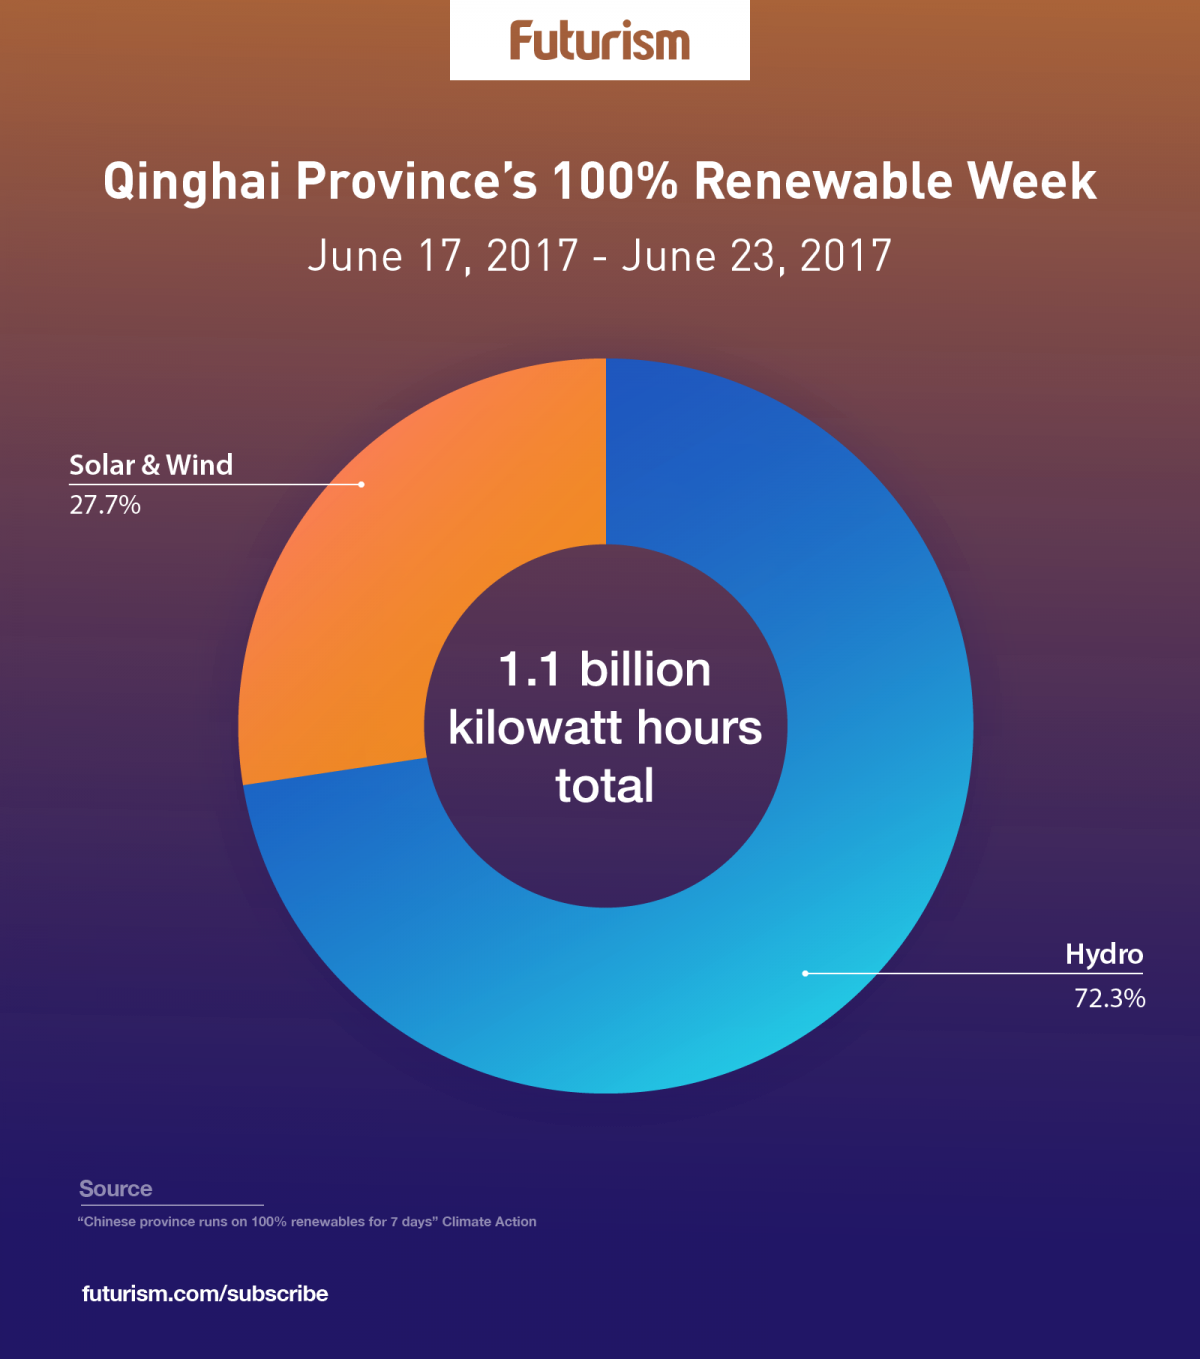 6 Million People in China Received All of Their Energy From Renewables for a Whole Week